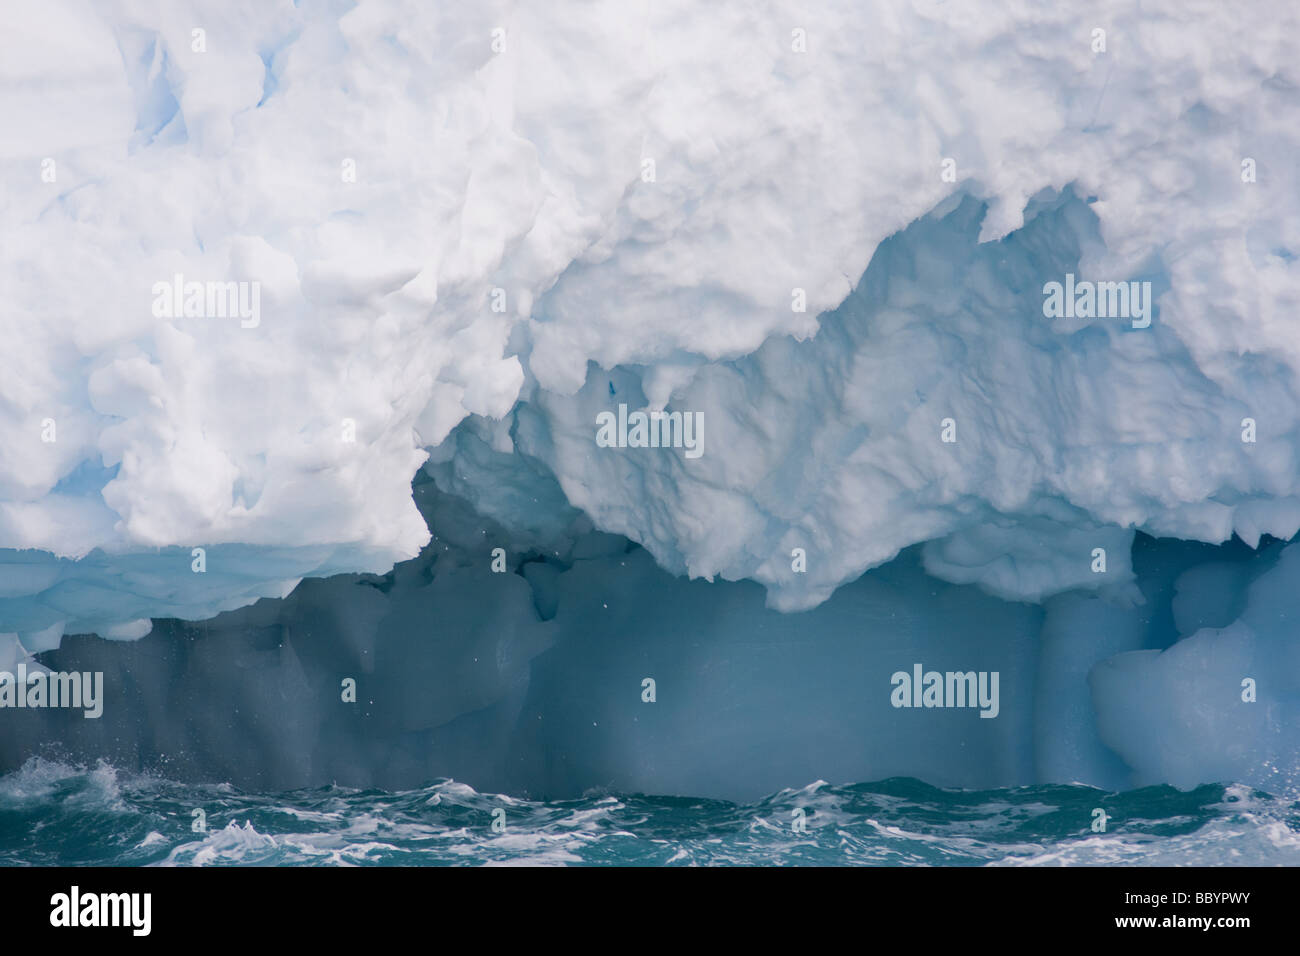 Ice landscapes from Antartica including amazing iceberg structures and features. - Stock Image